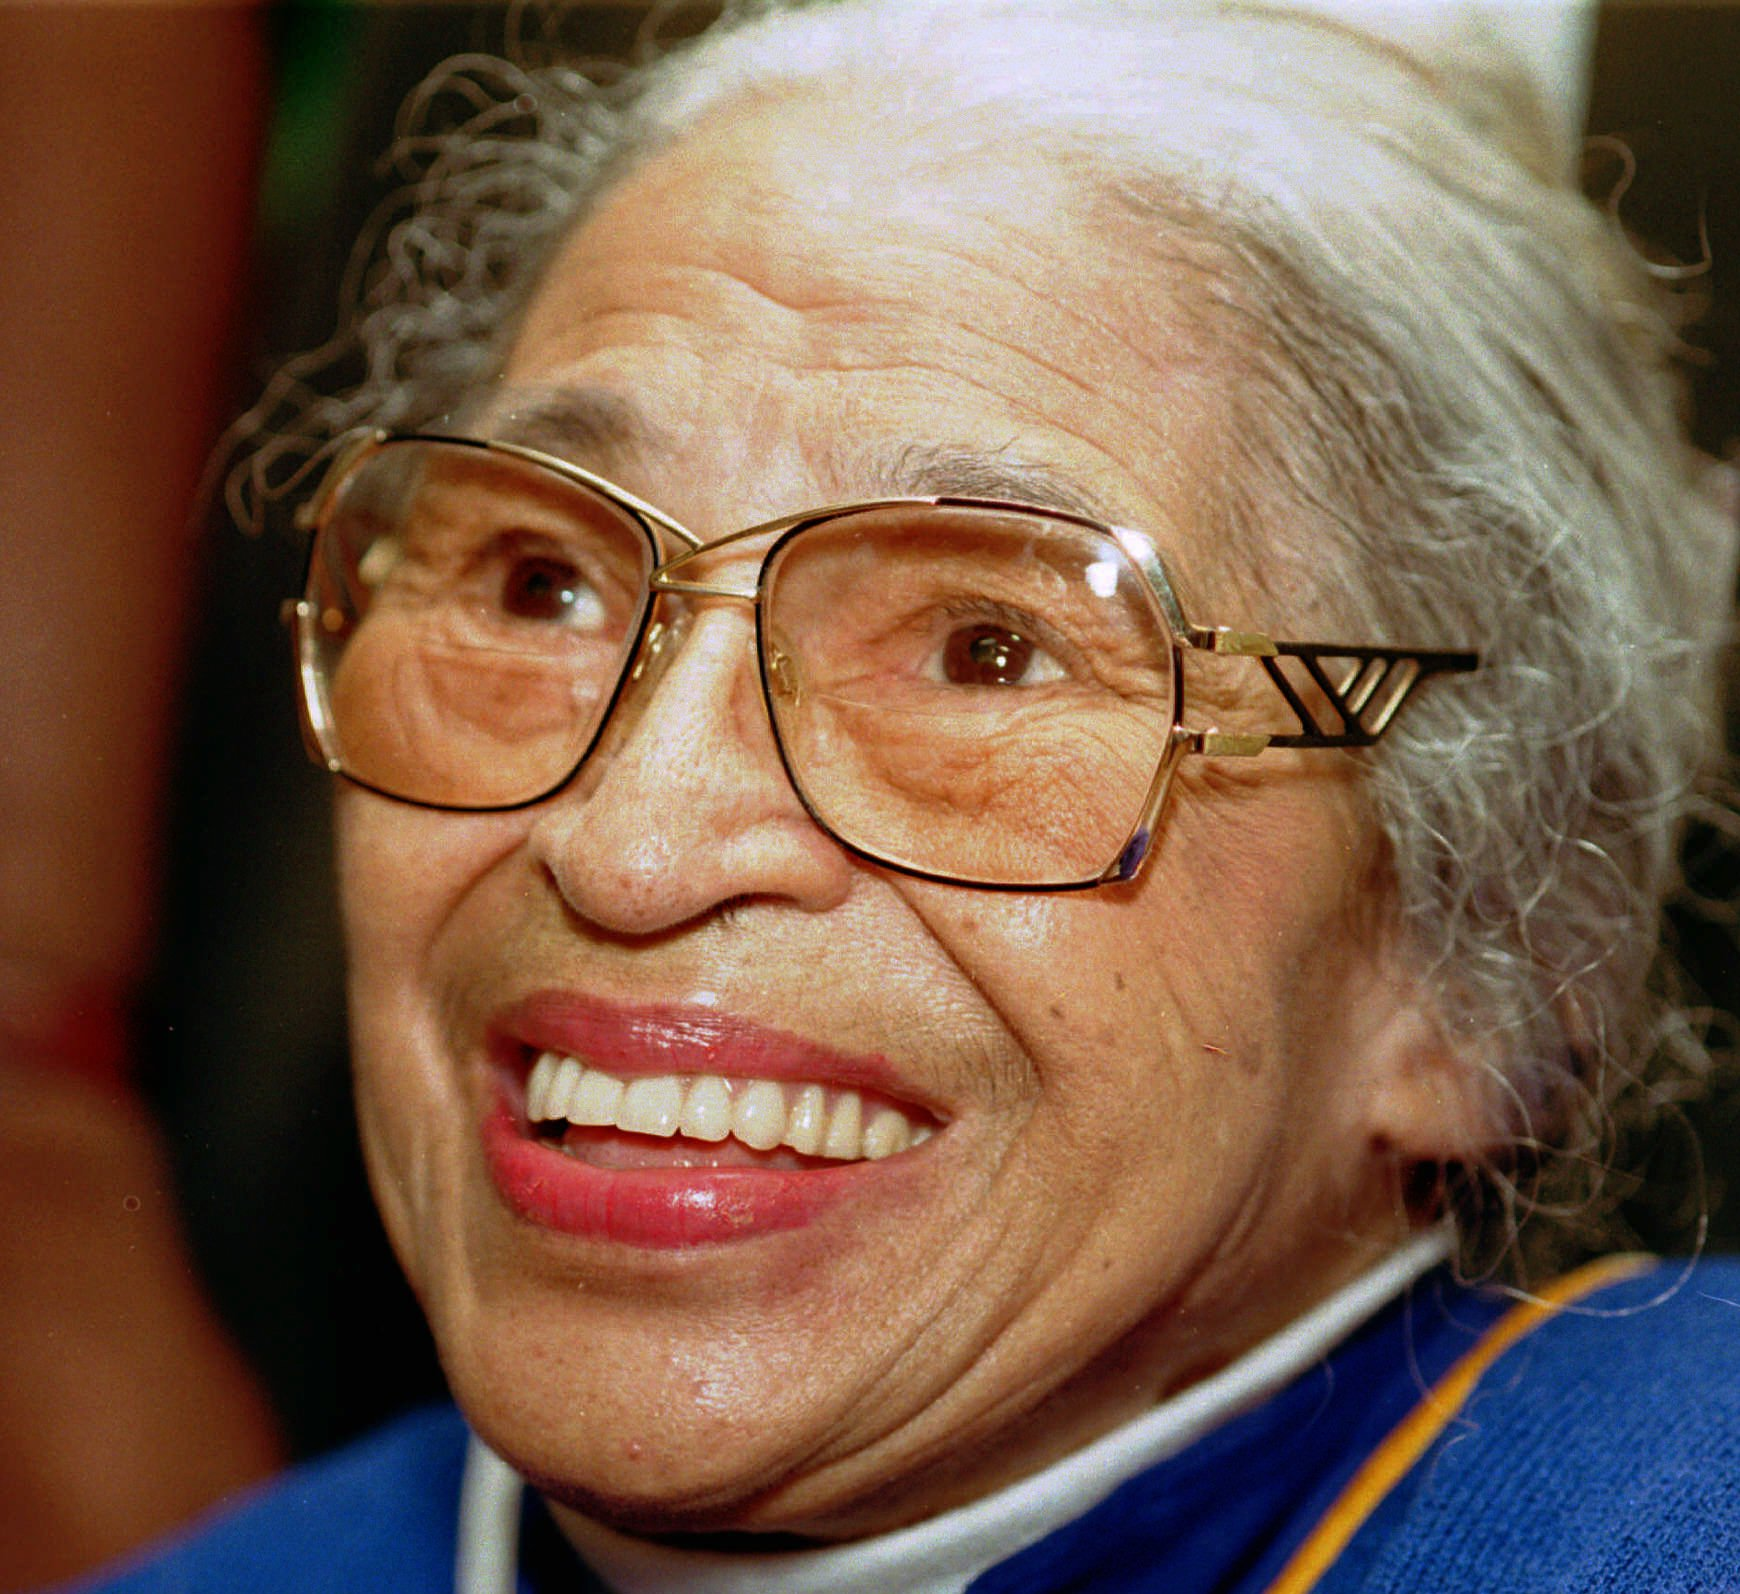 In Rosa Letters Written By Rosa Parks Reveal Inner Struggles With Racism